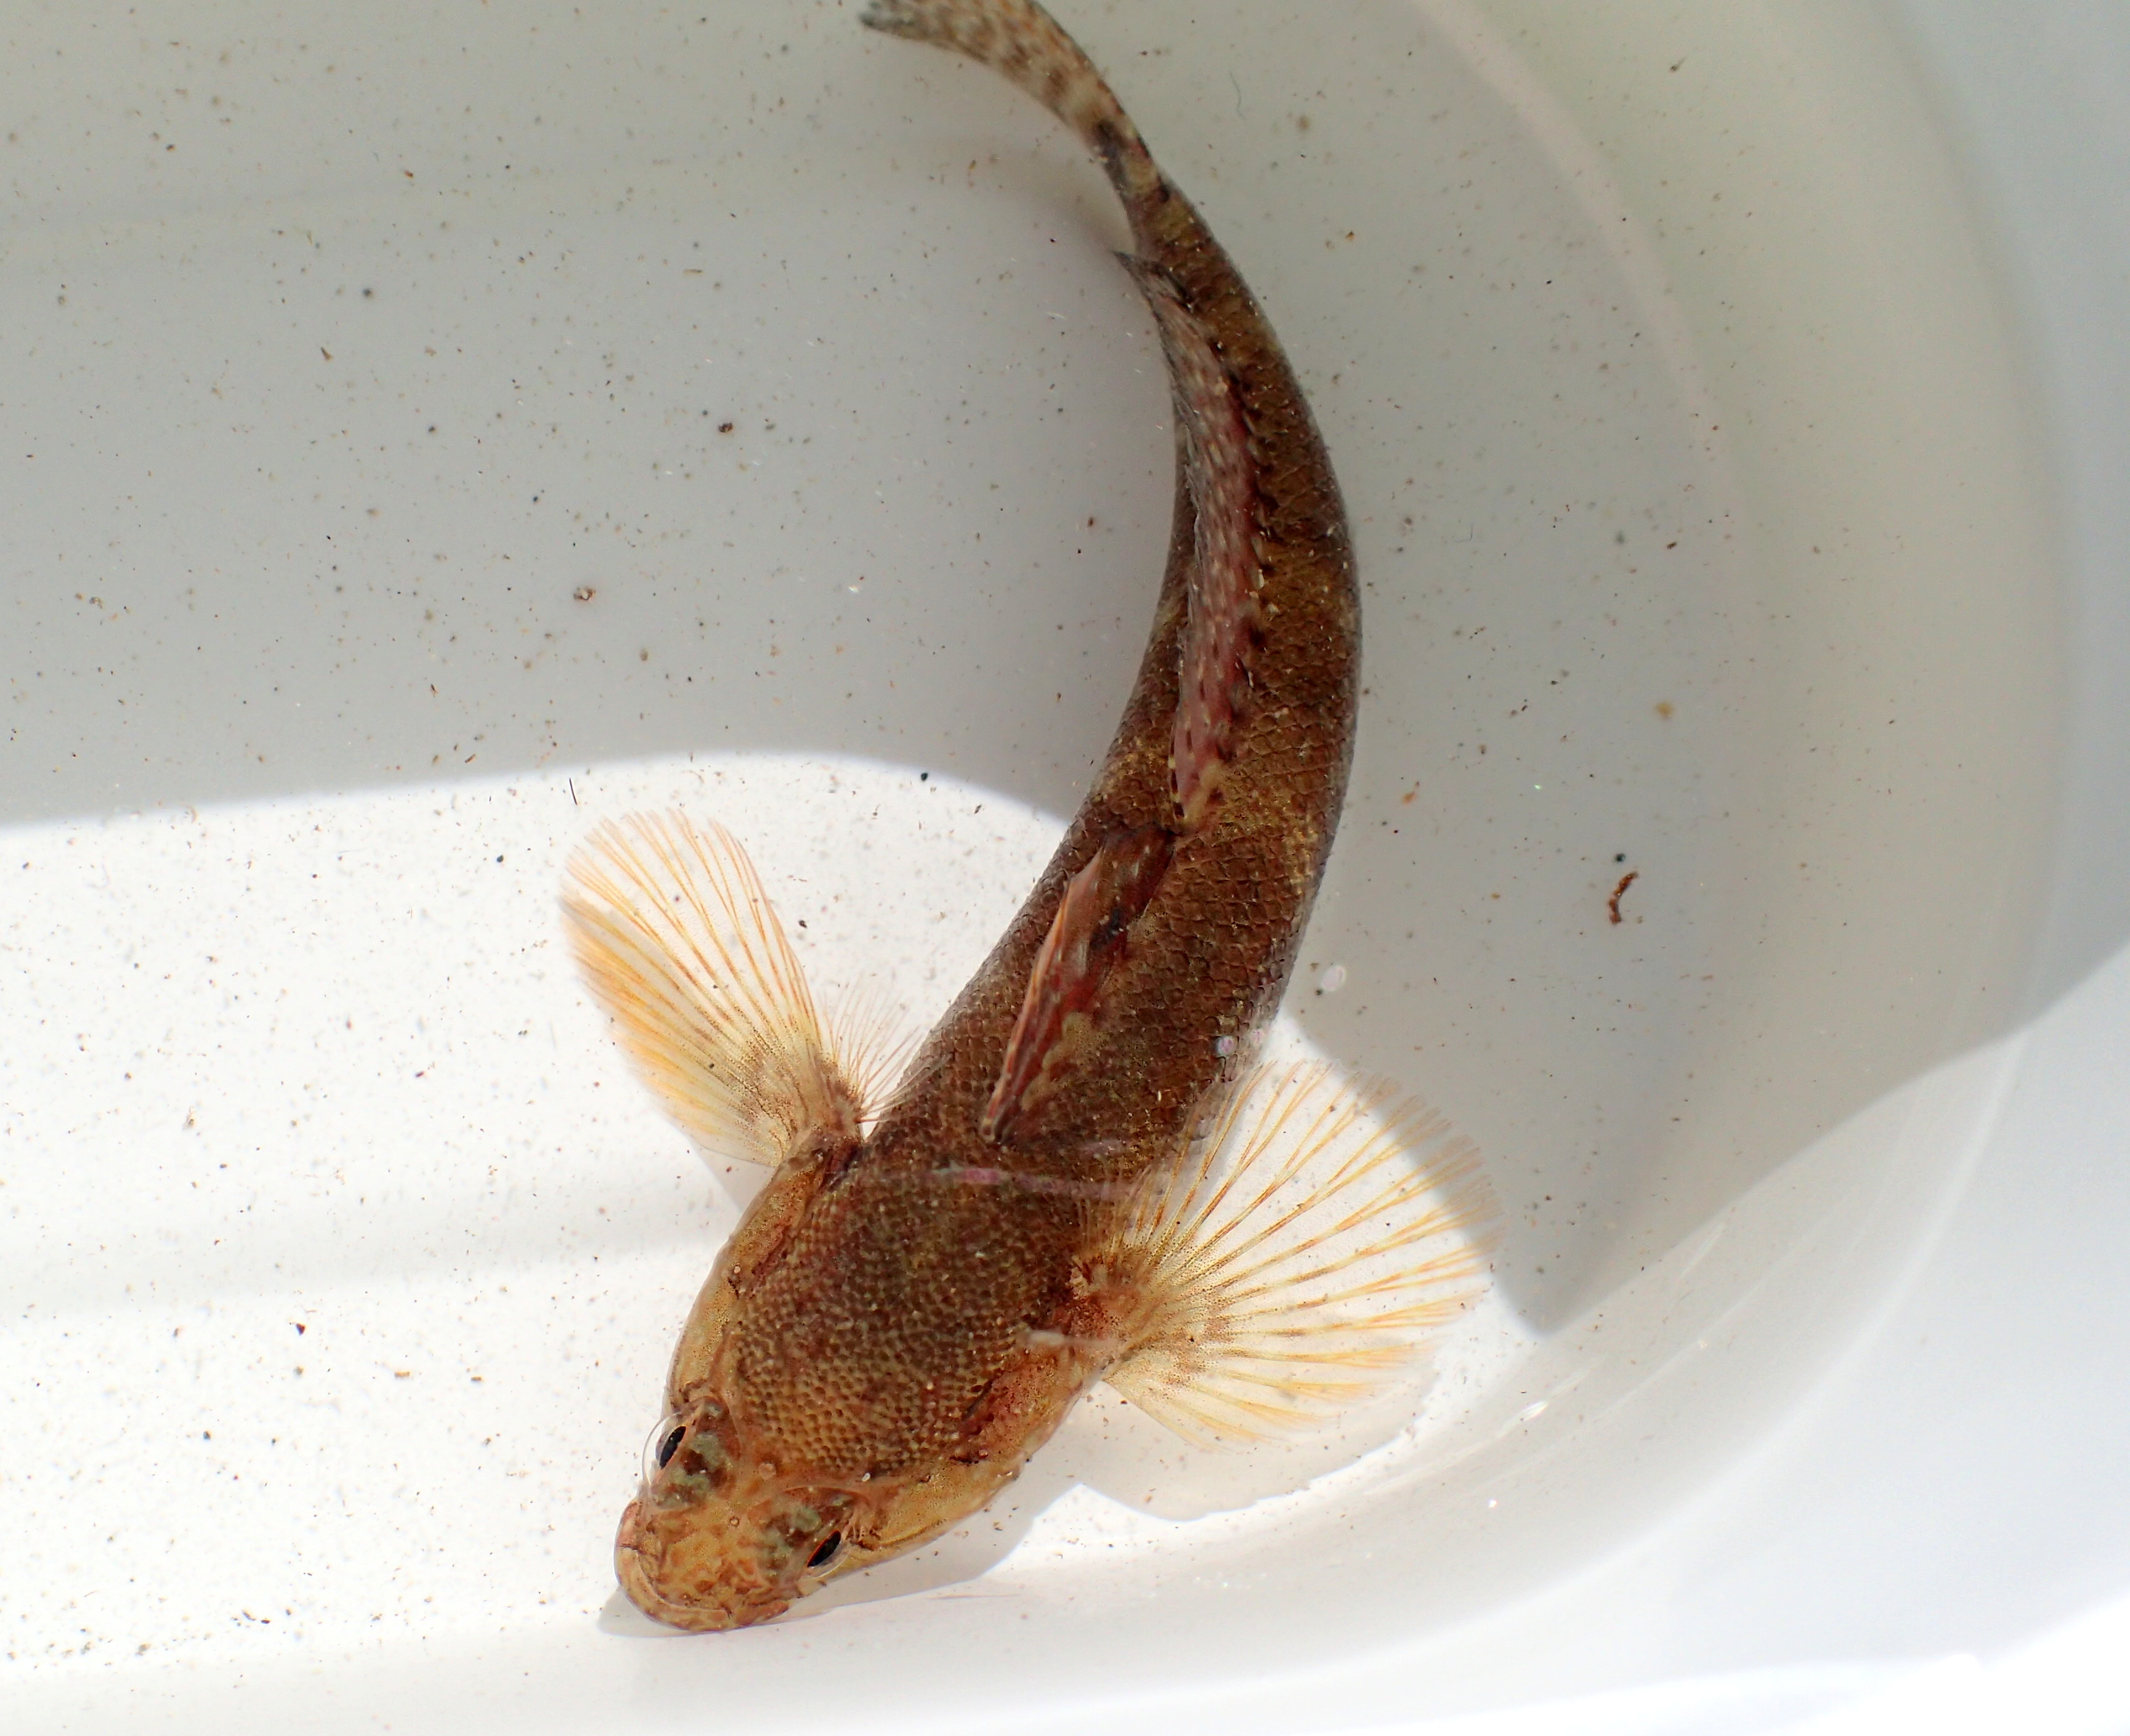 Rock gobies have two fins on their back. The first has a yellow tinge on the top.